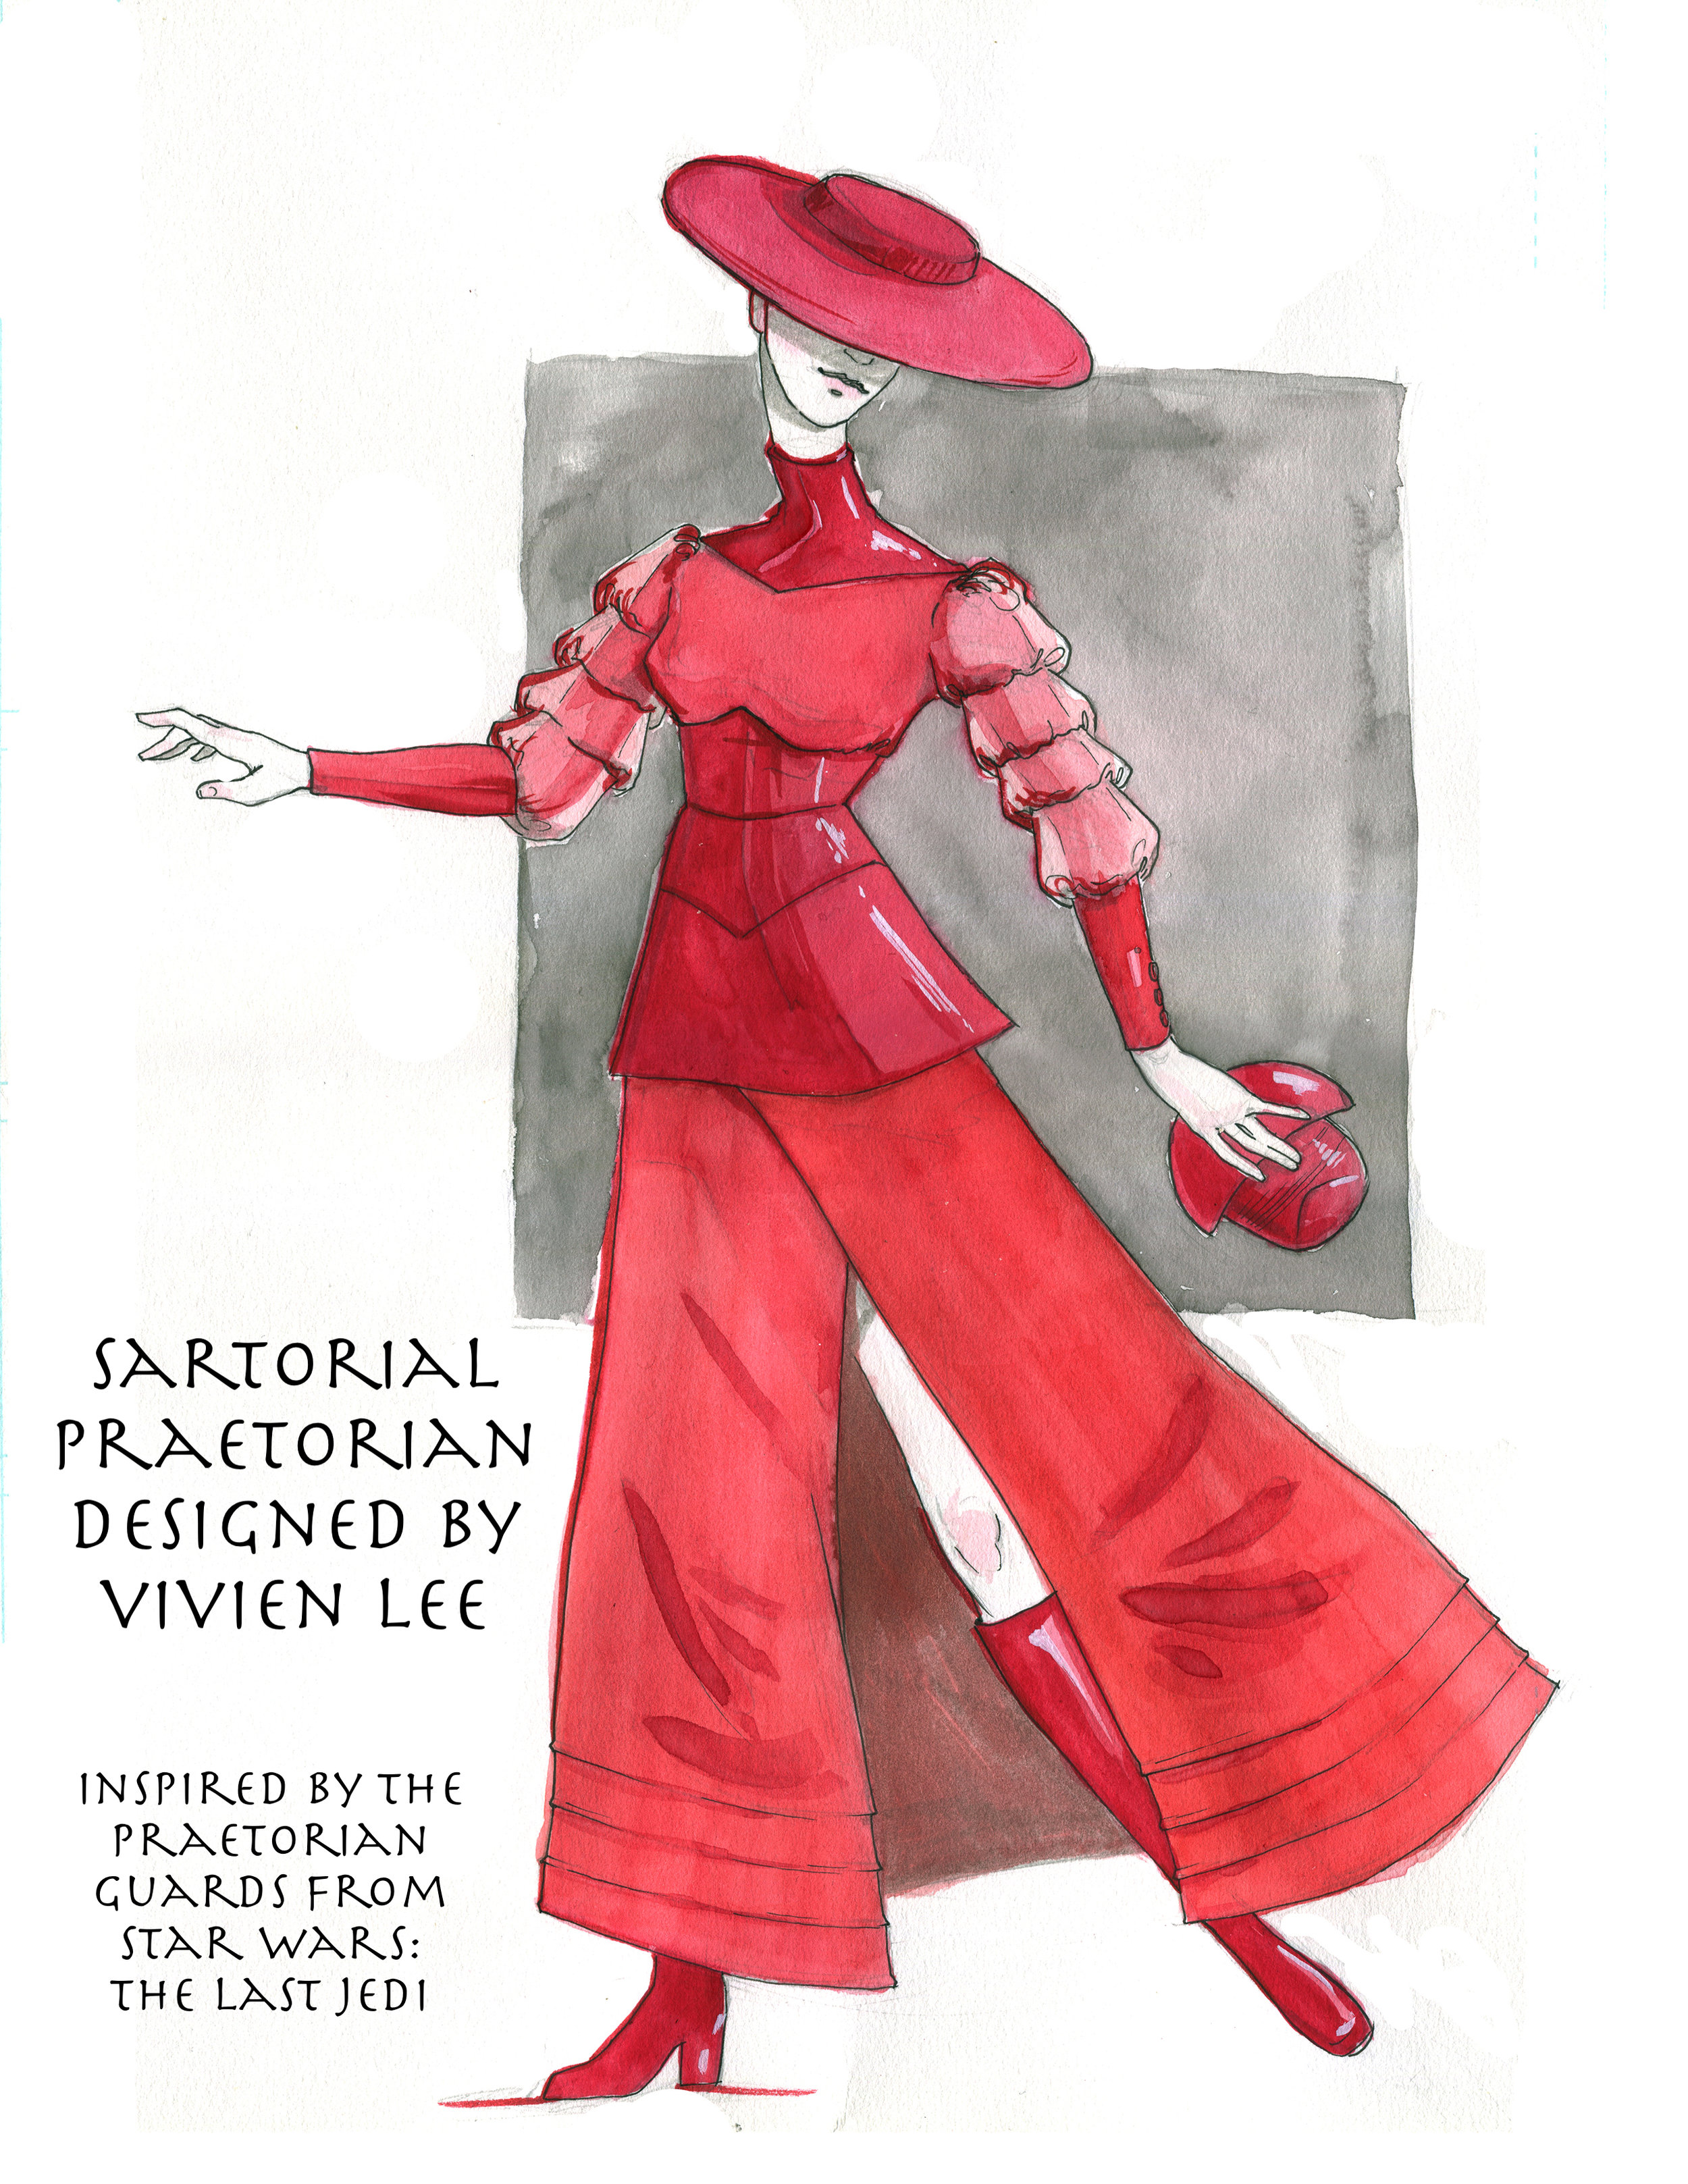 Sartorial Praetorian inspired by the Praetorian Guards from Star Wars: The Last Jedi by Vivian Lee